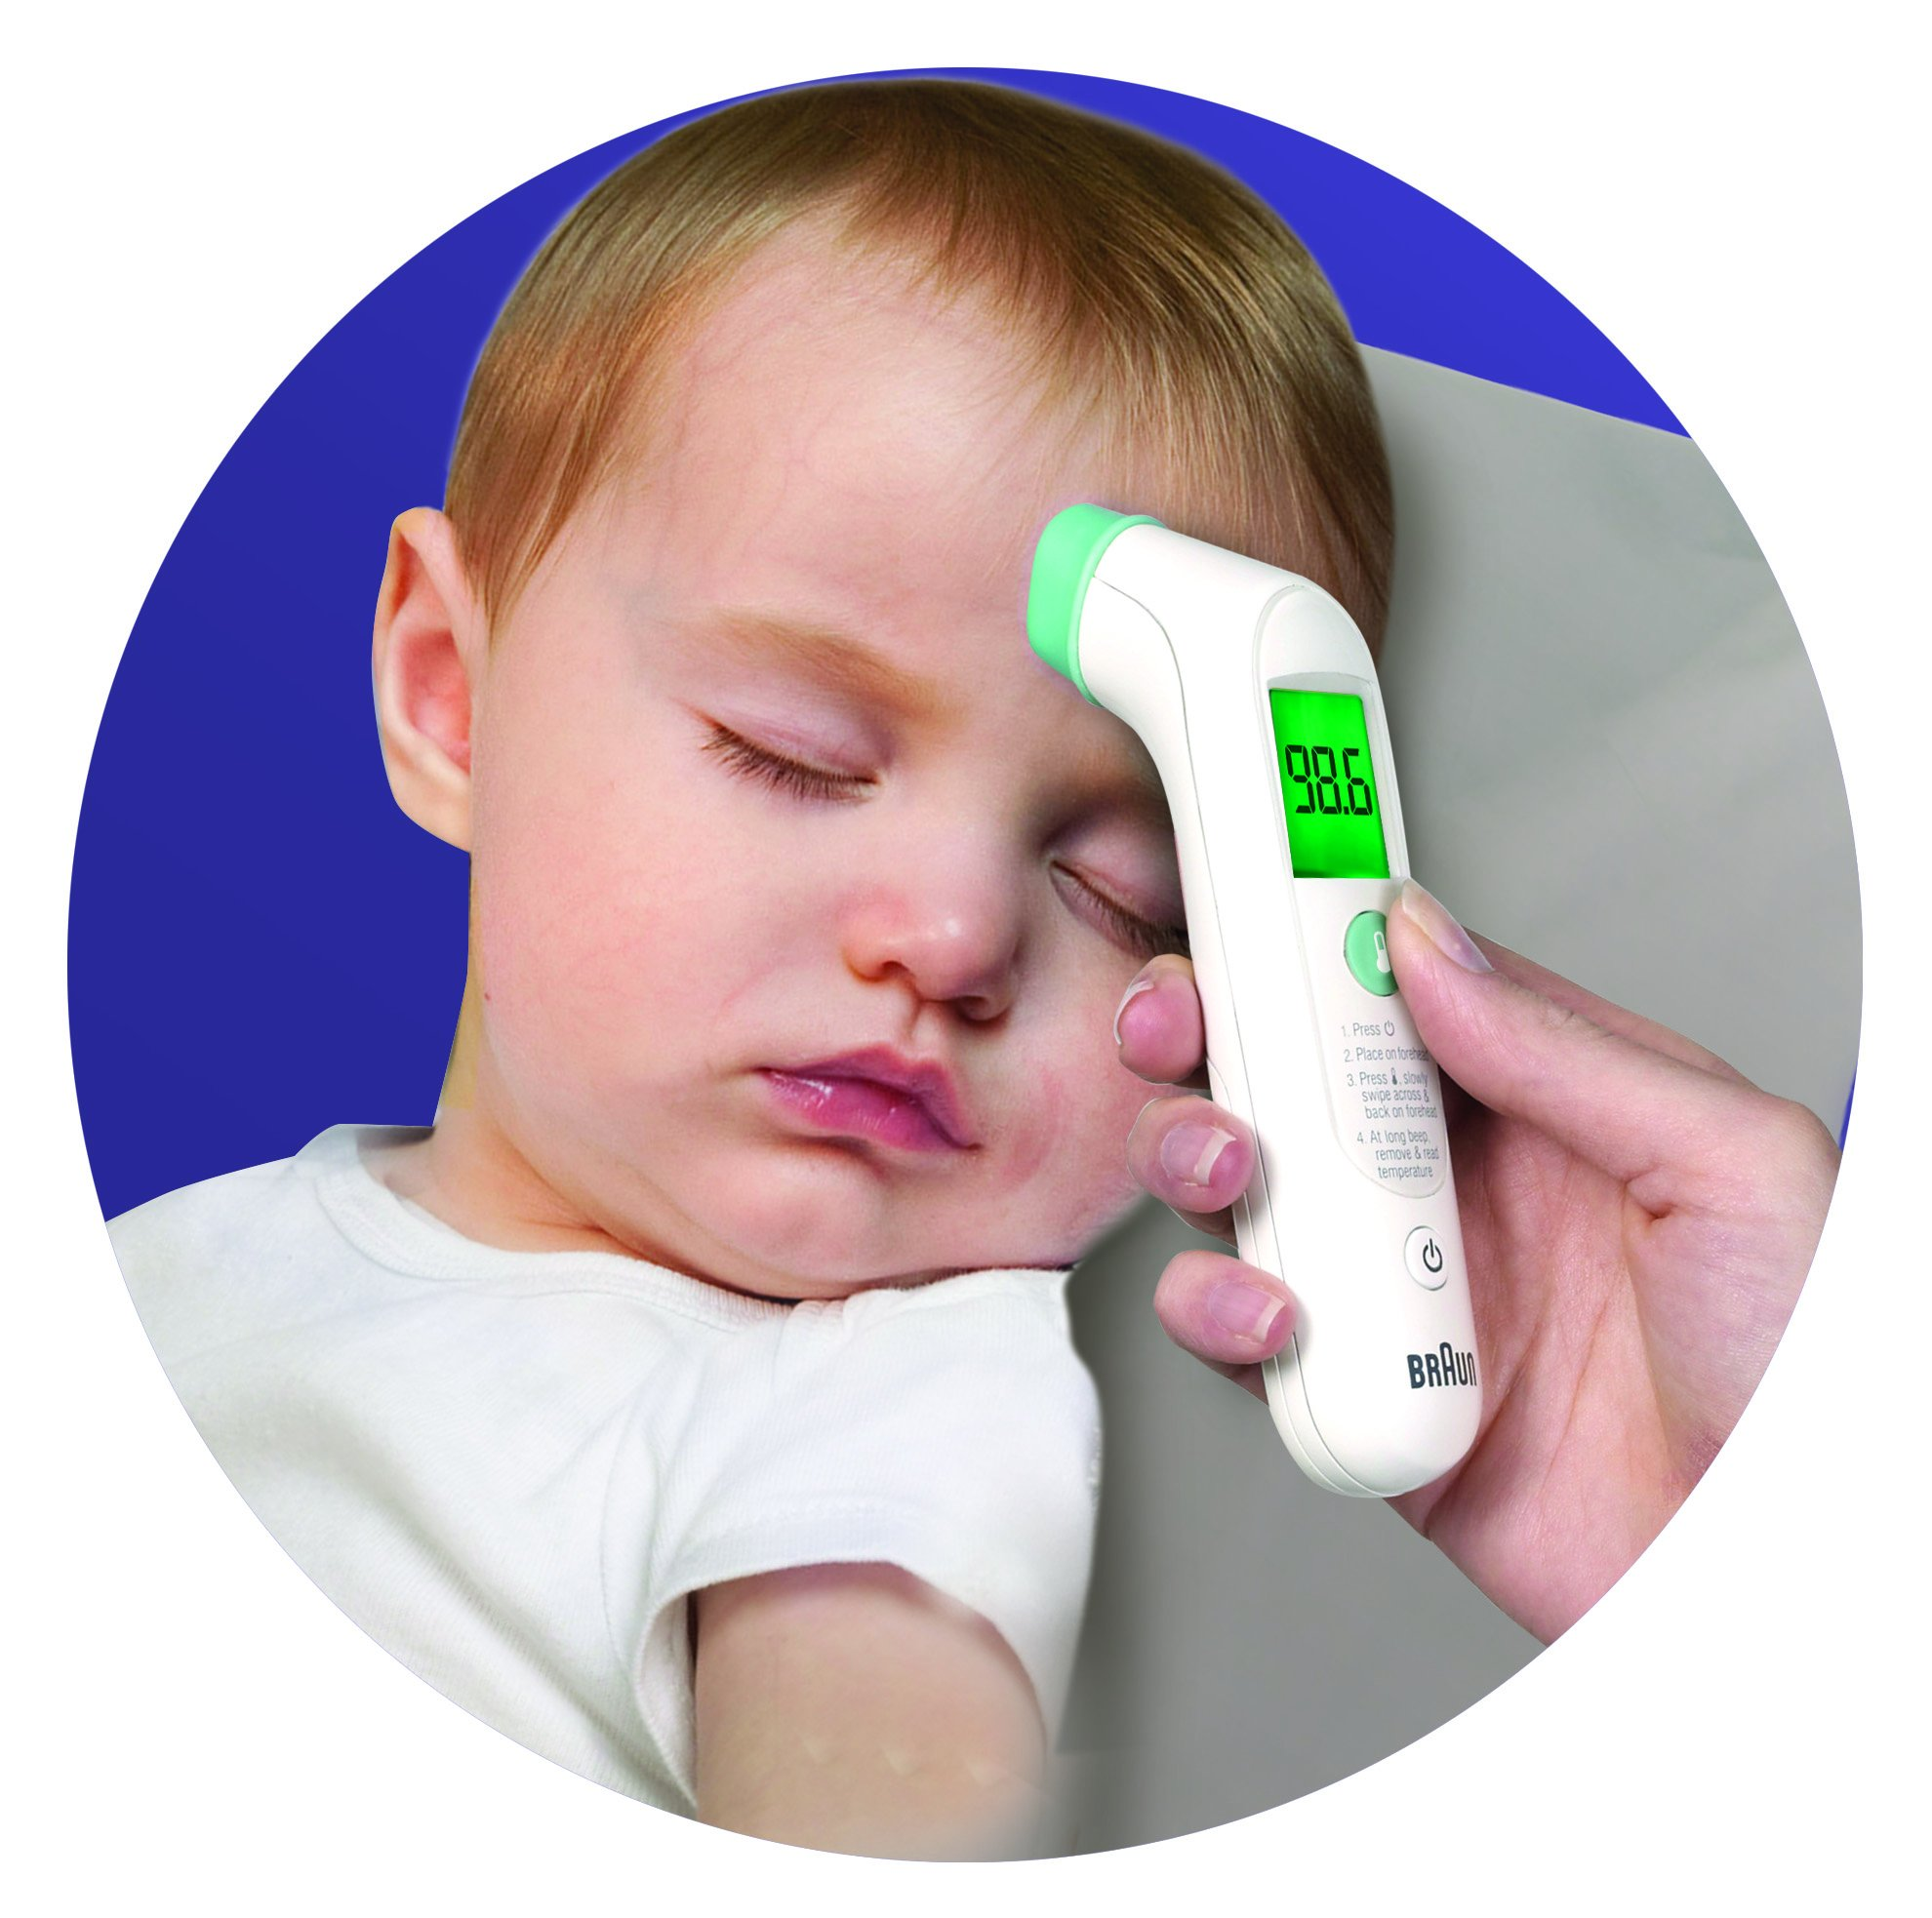 Braun BFH-125 Forehead Thermometer, White Forehead Thermometer for Babies, Kids, Toddlers, Adults, Display is Digital and Accurate, Thermometer for Precise Fever Tracking at Home